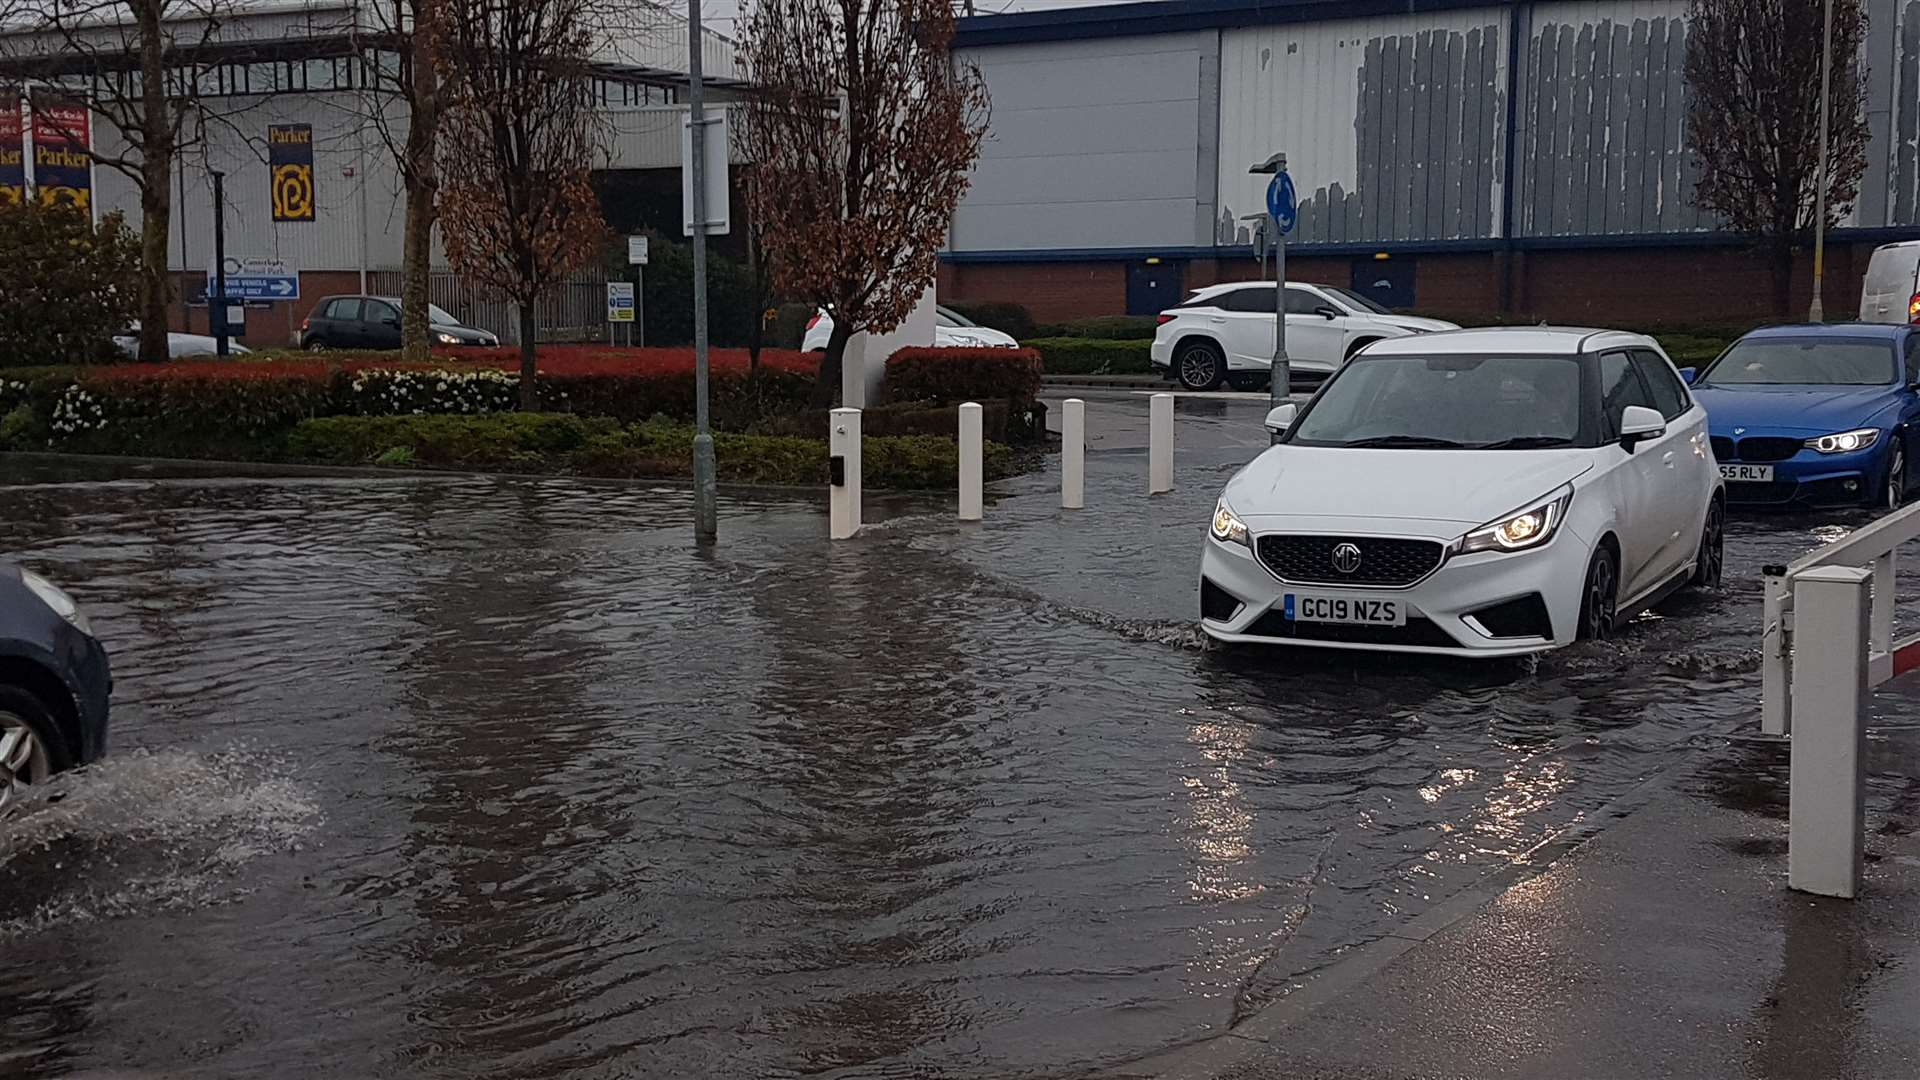 Motorists risking entering the flooded car park